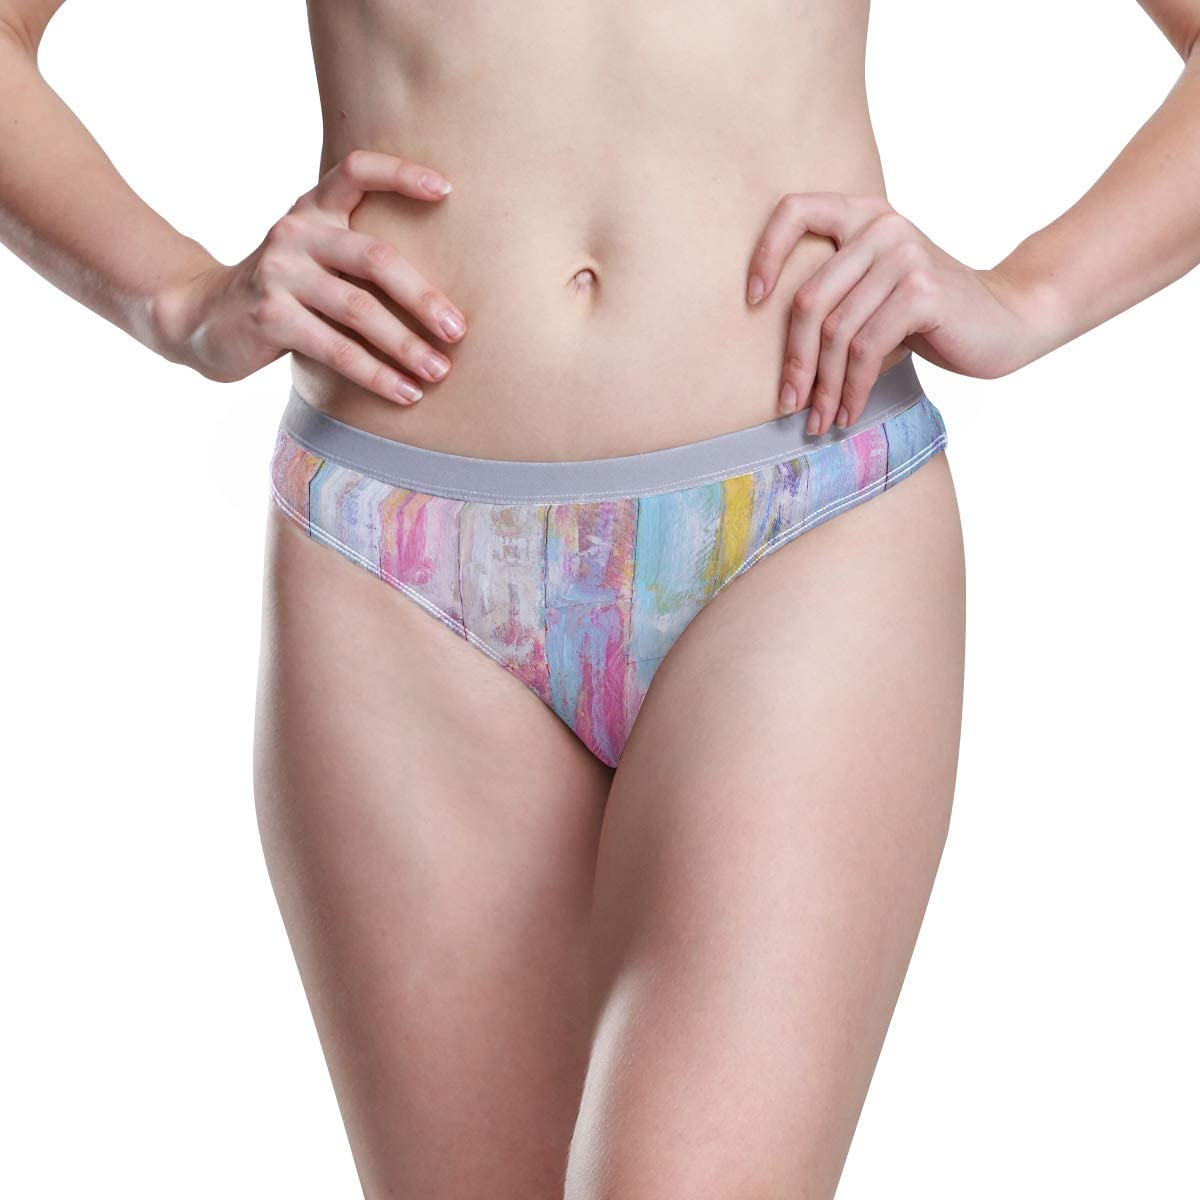 Women Underwear Bikini Vintage Colorful Wooden 3D Printed Sexy Low Waist Panties Hipster Comfy Briefs S